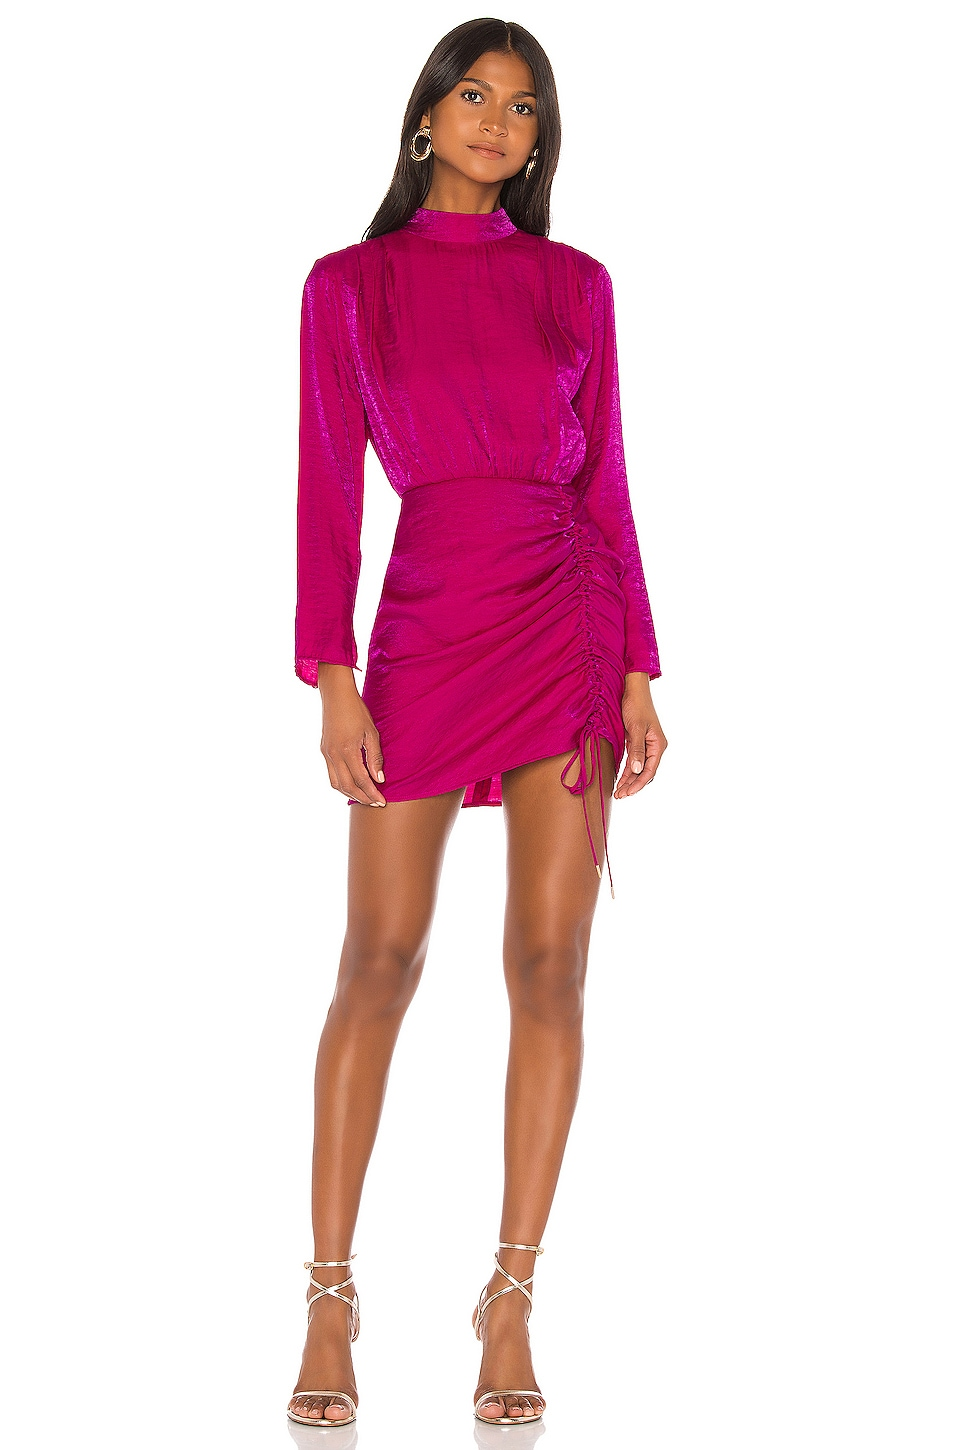 Yasmine Dress                   Finders Keepers                                                                                                                             CA$ 202.70 33